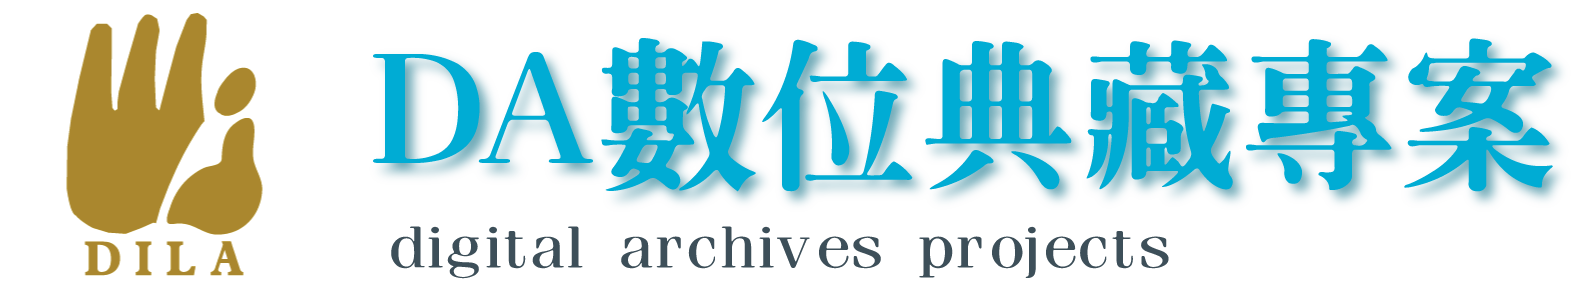 DA digital archives projects